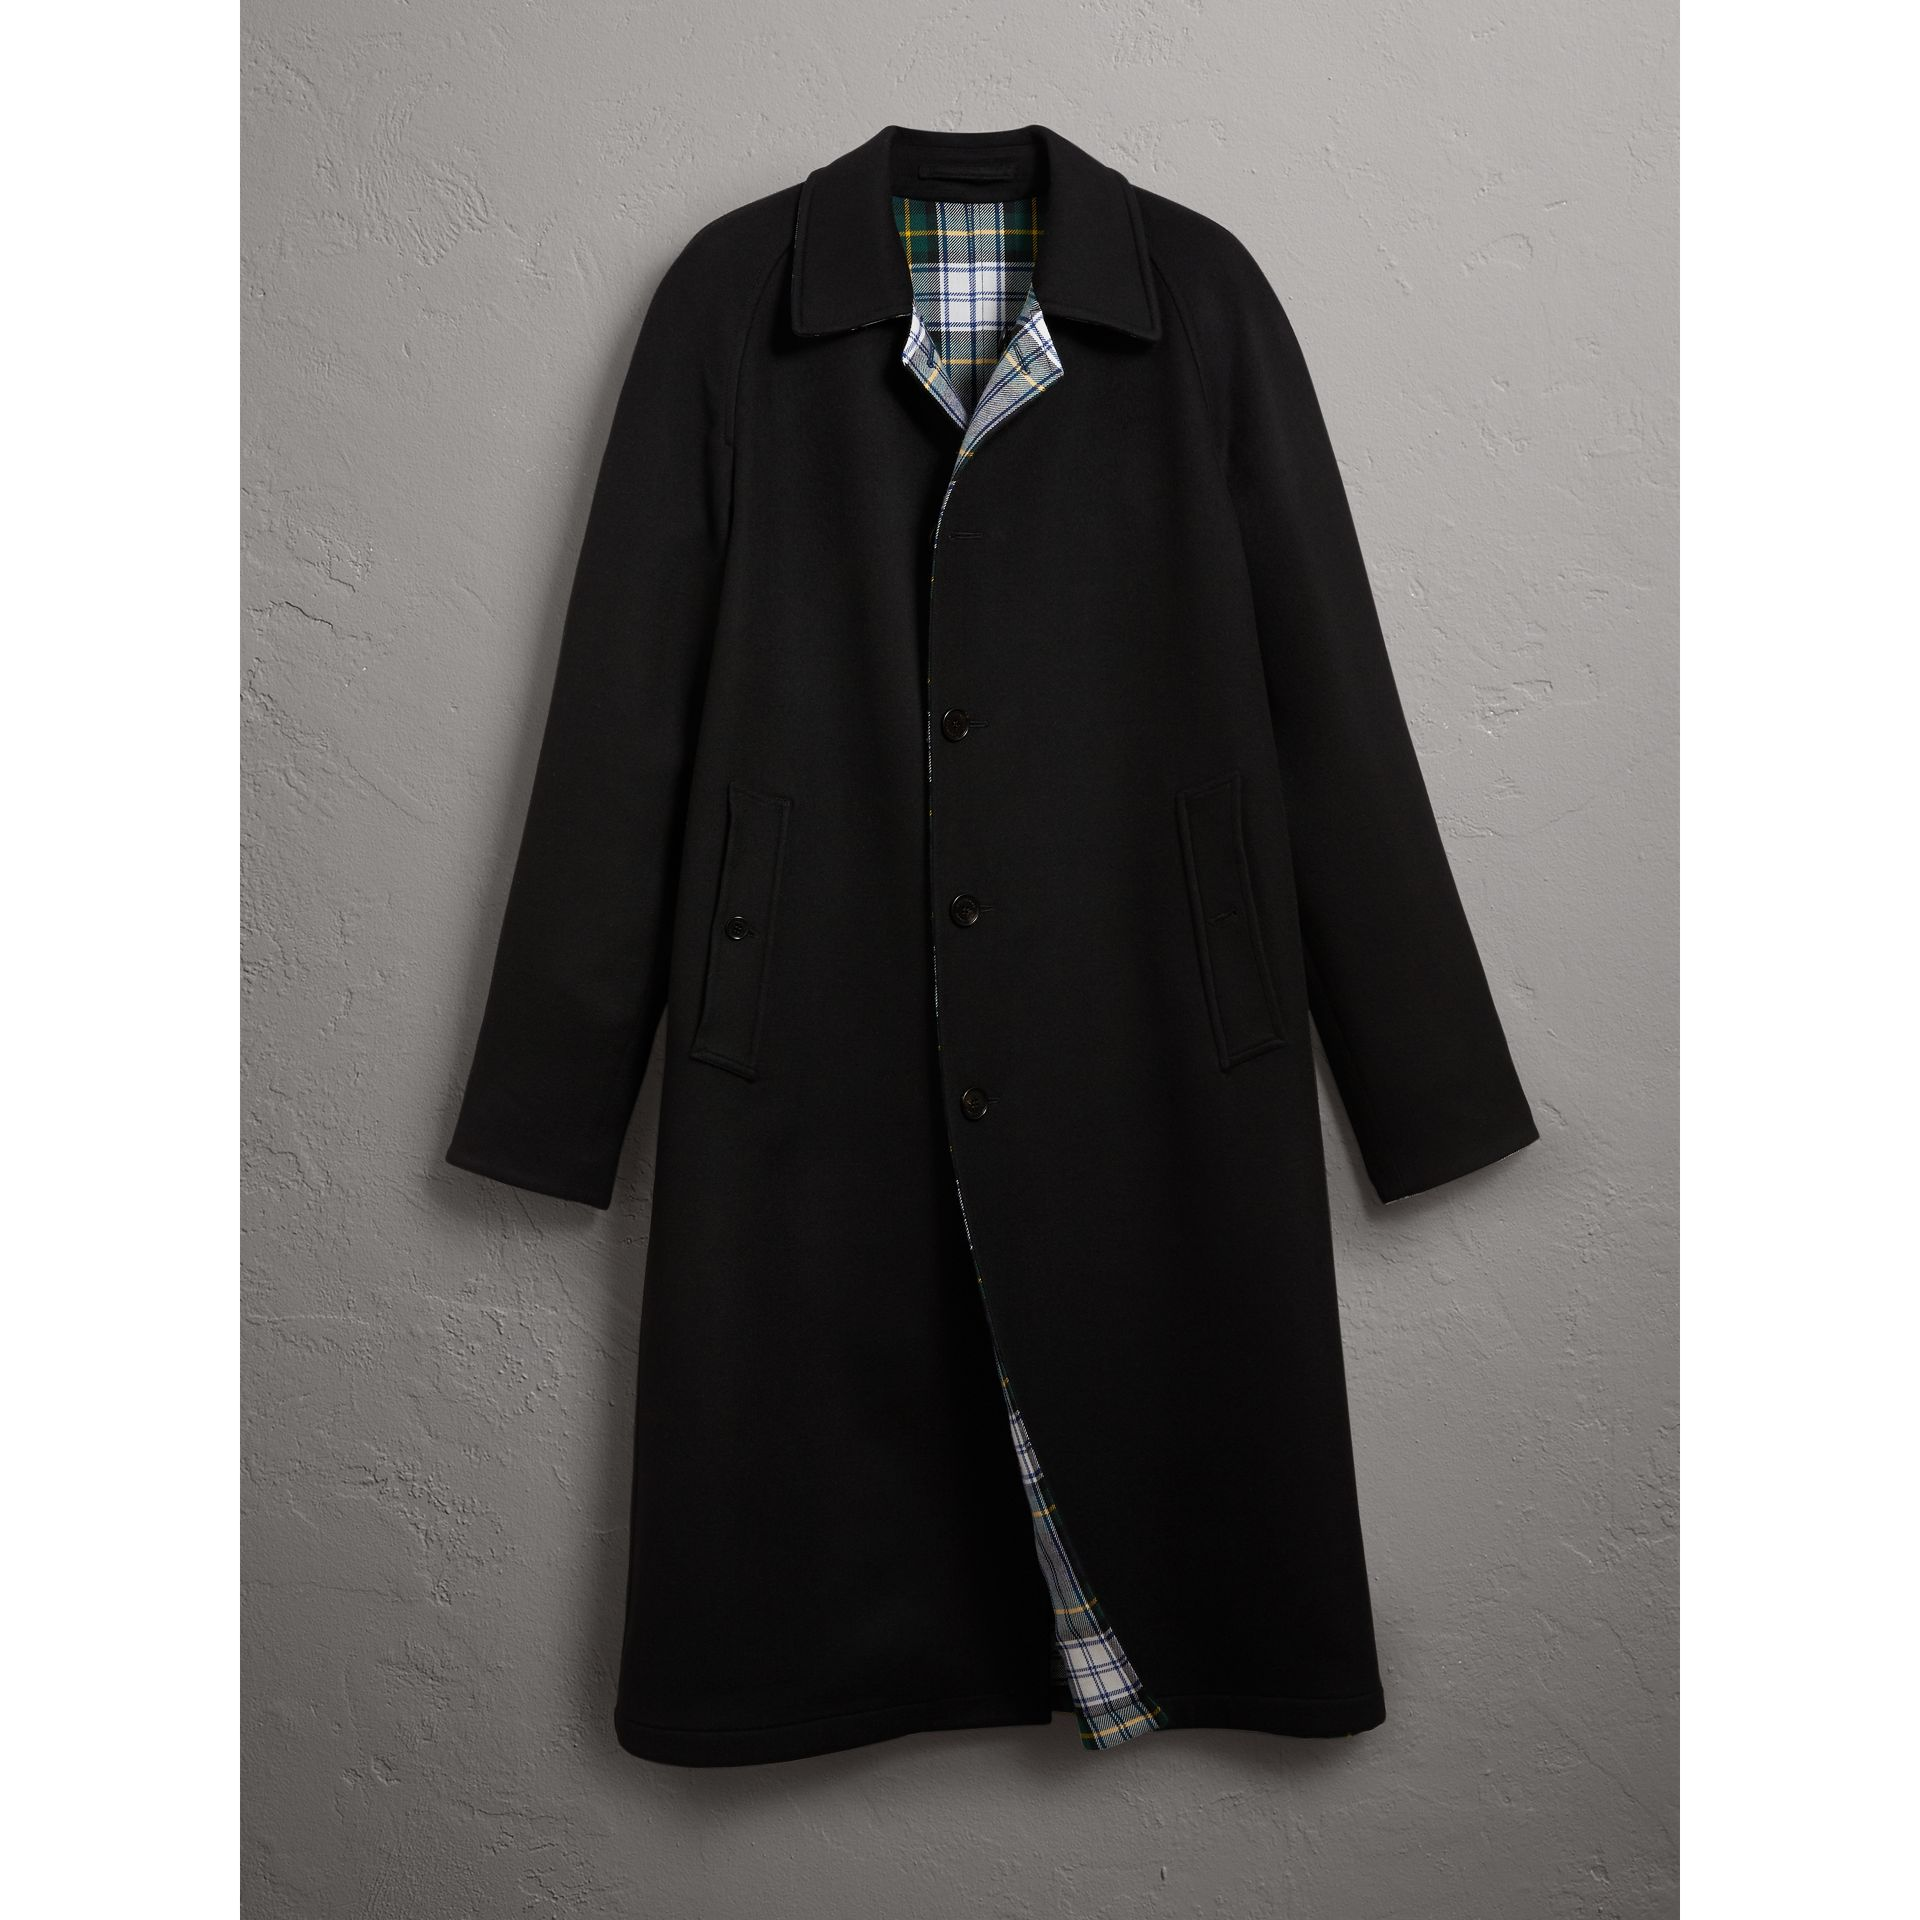 Burberry Black Reversible Cashmere and Tartan Wool Car Coat